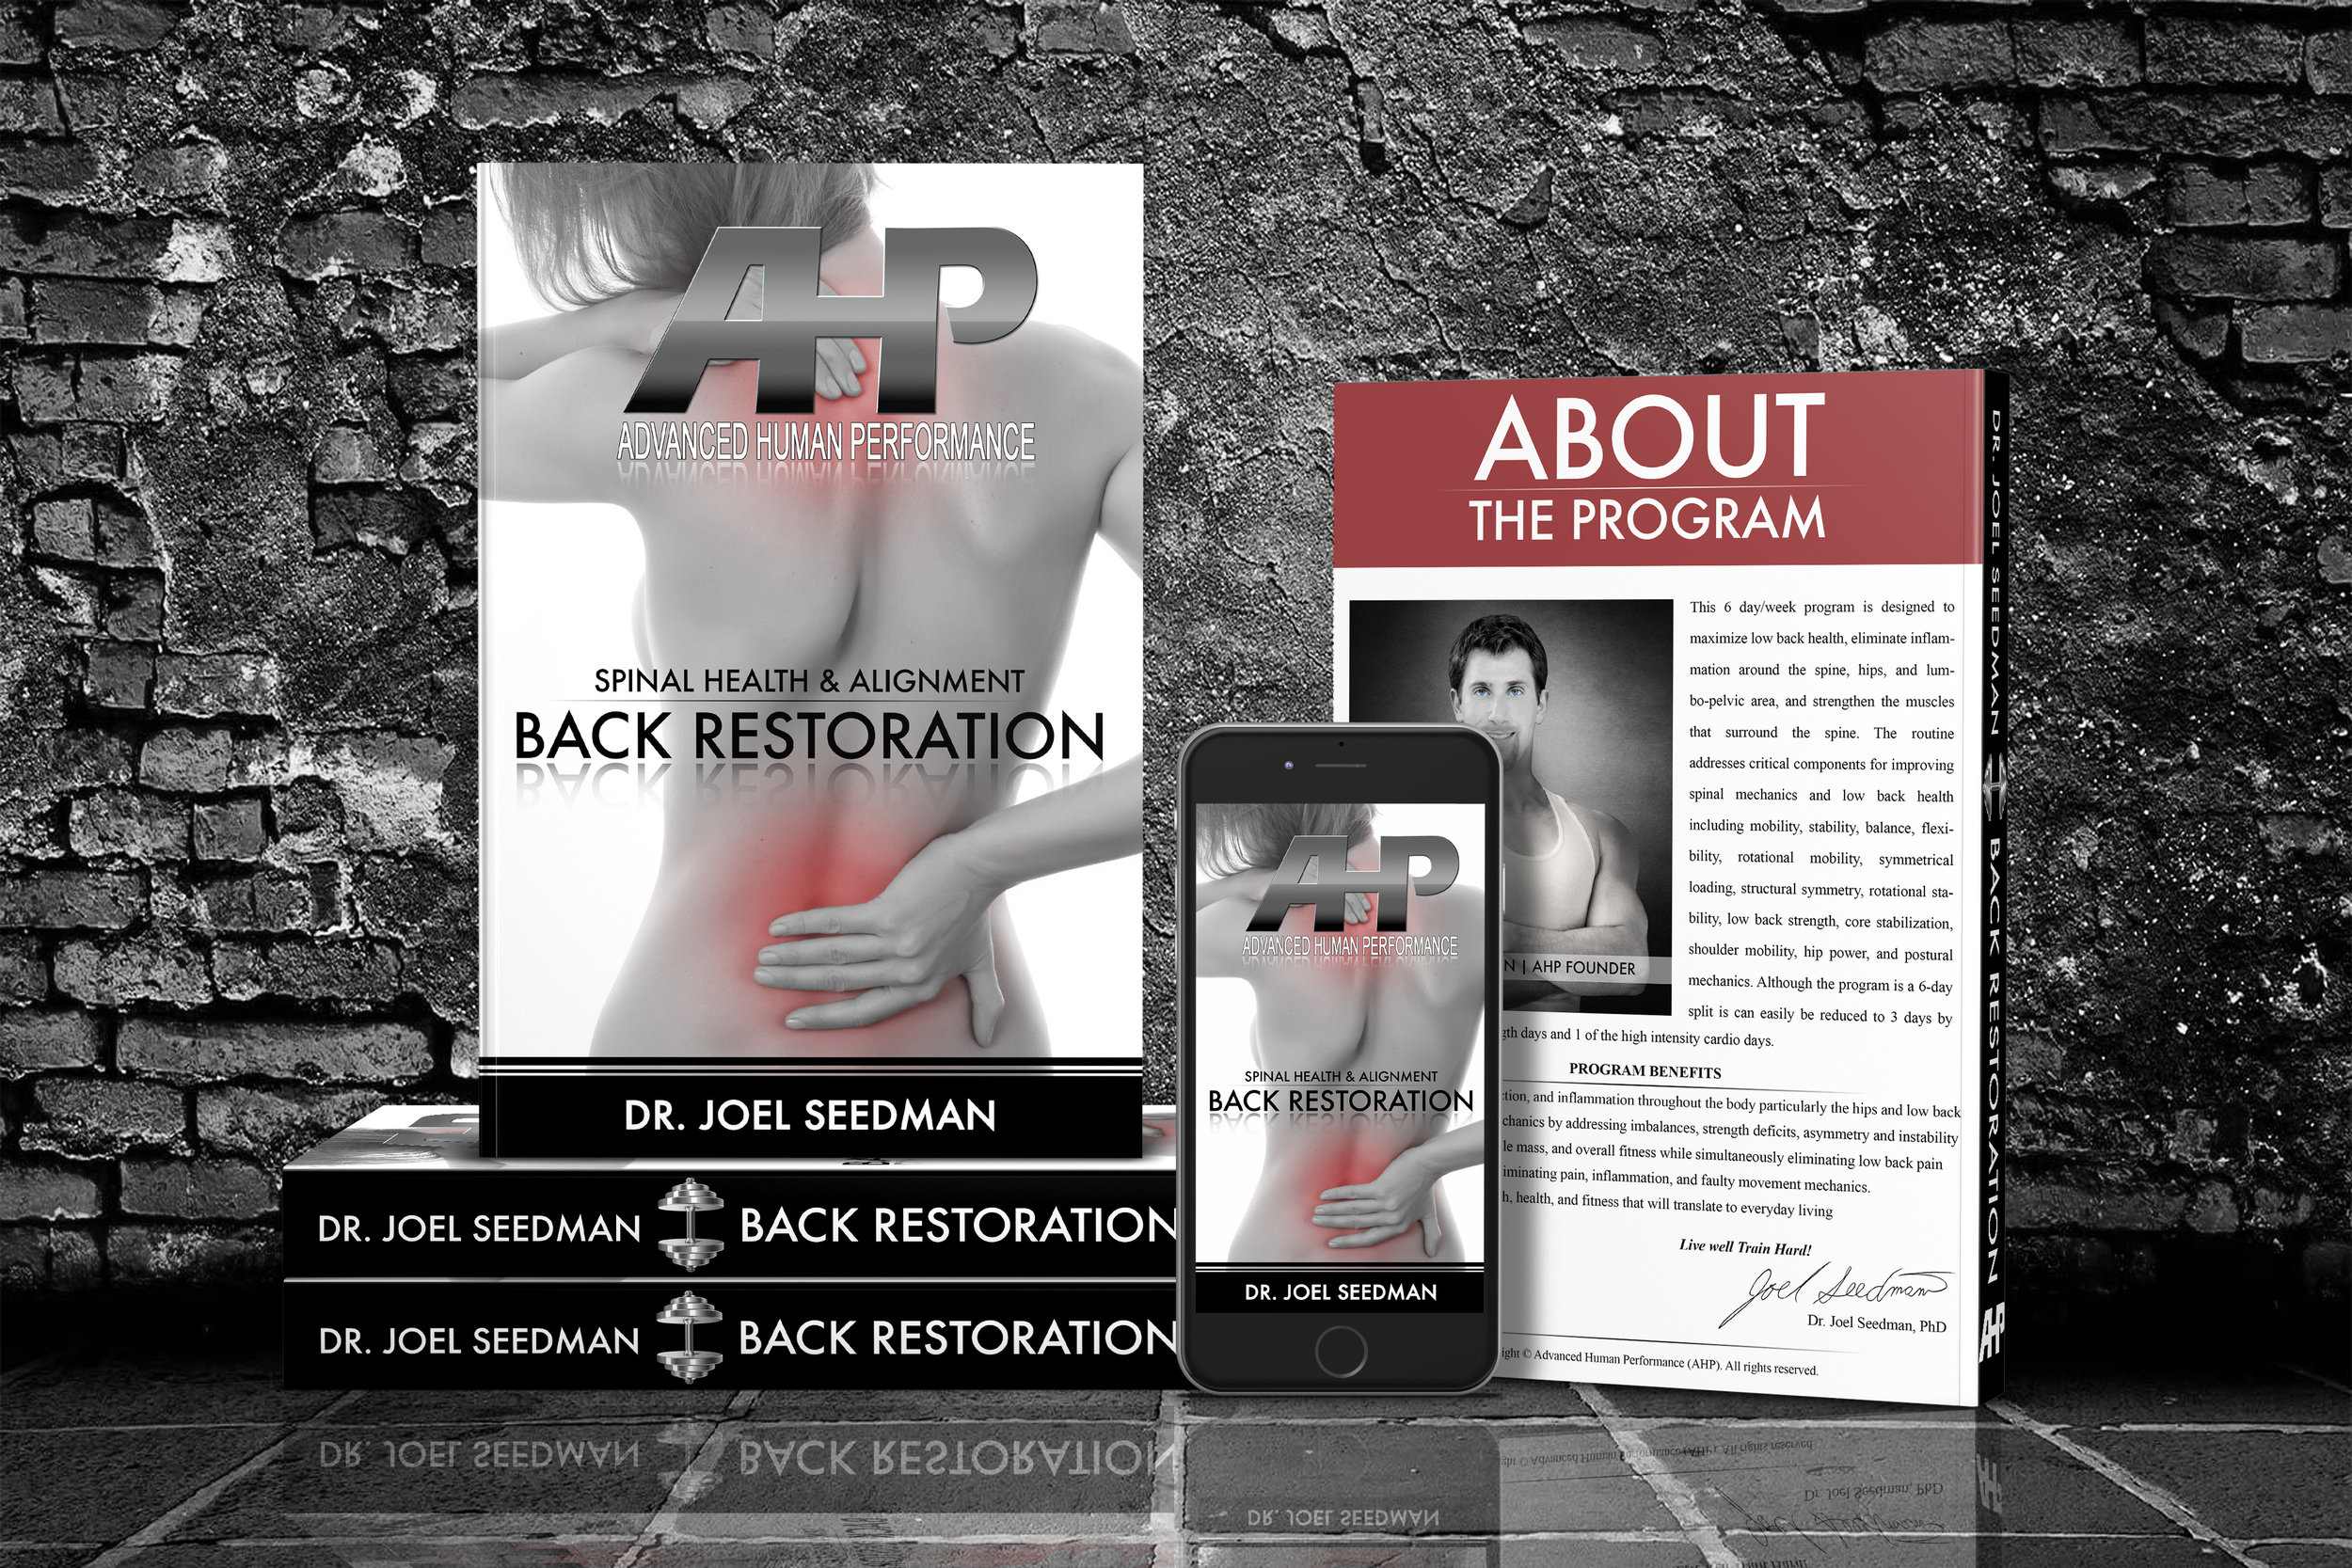 Back Restoration Book Display - Main Product Page.jpg